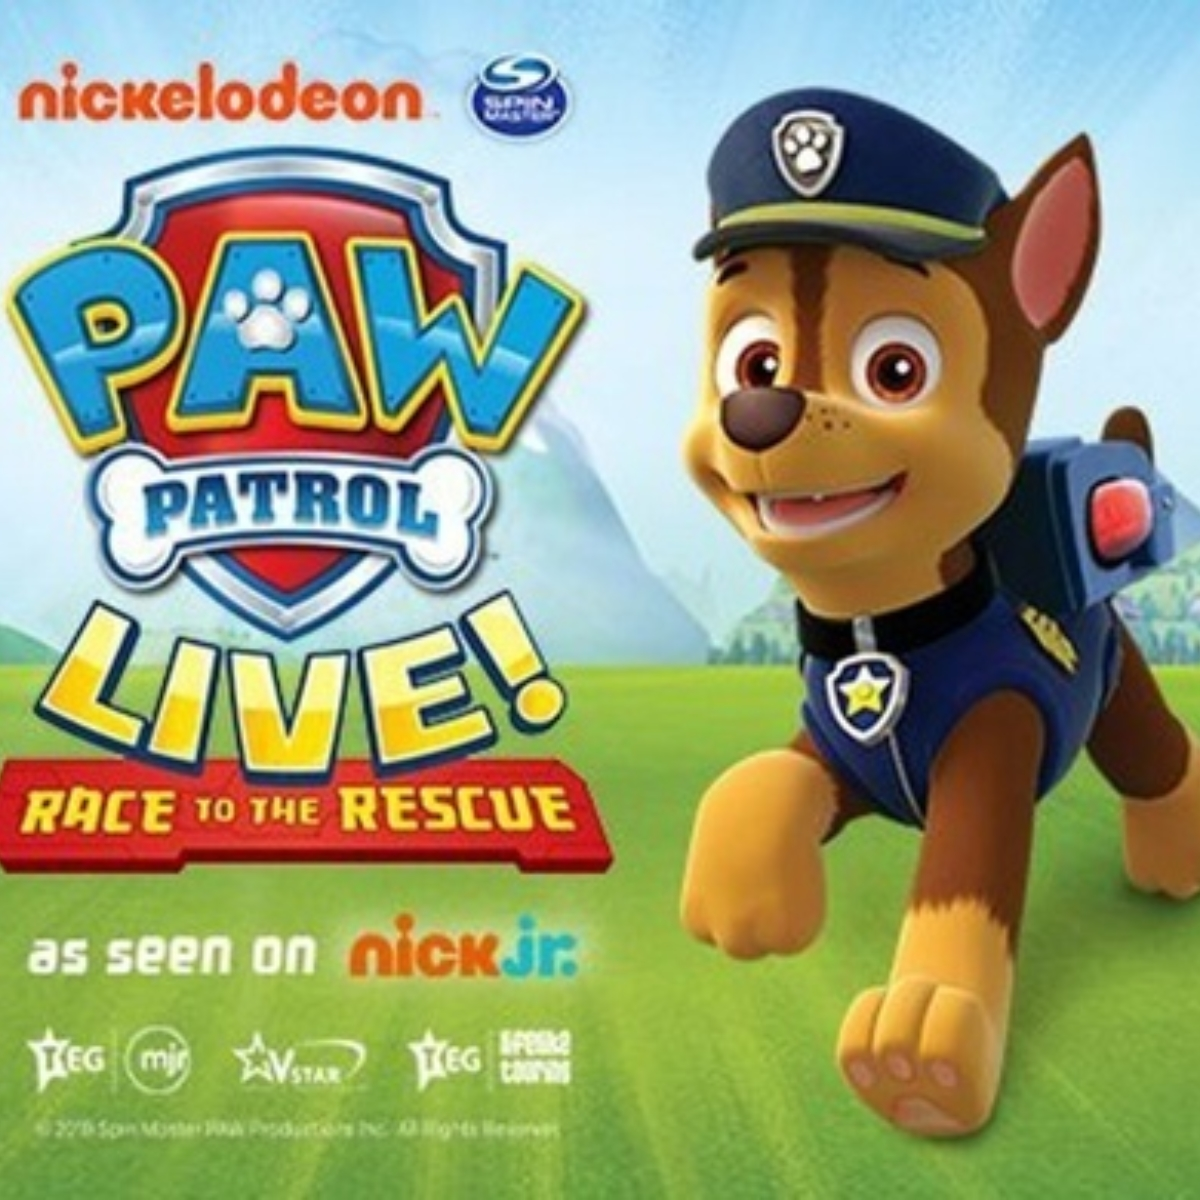 PAW PATROL LIVE! - Race to the Rescue (Bournemouth) Images